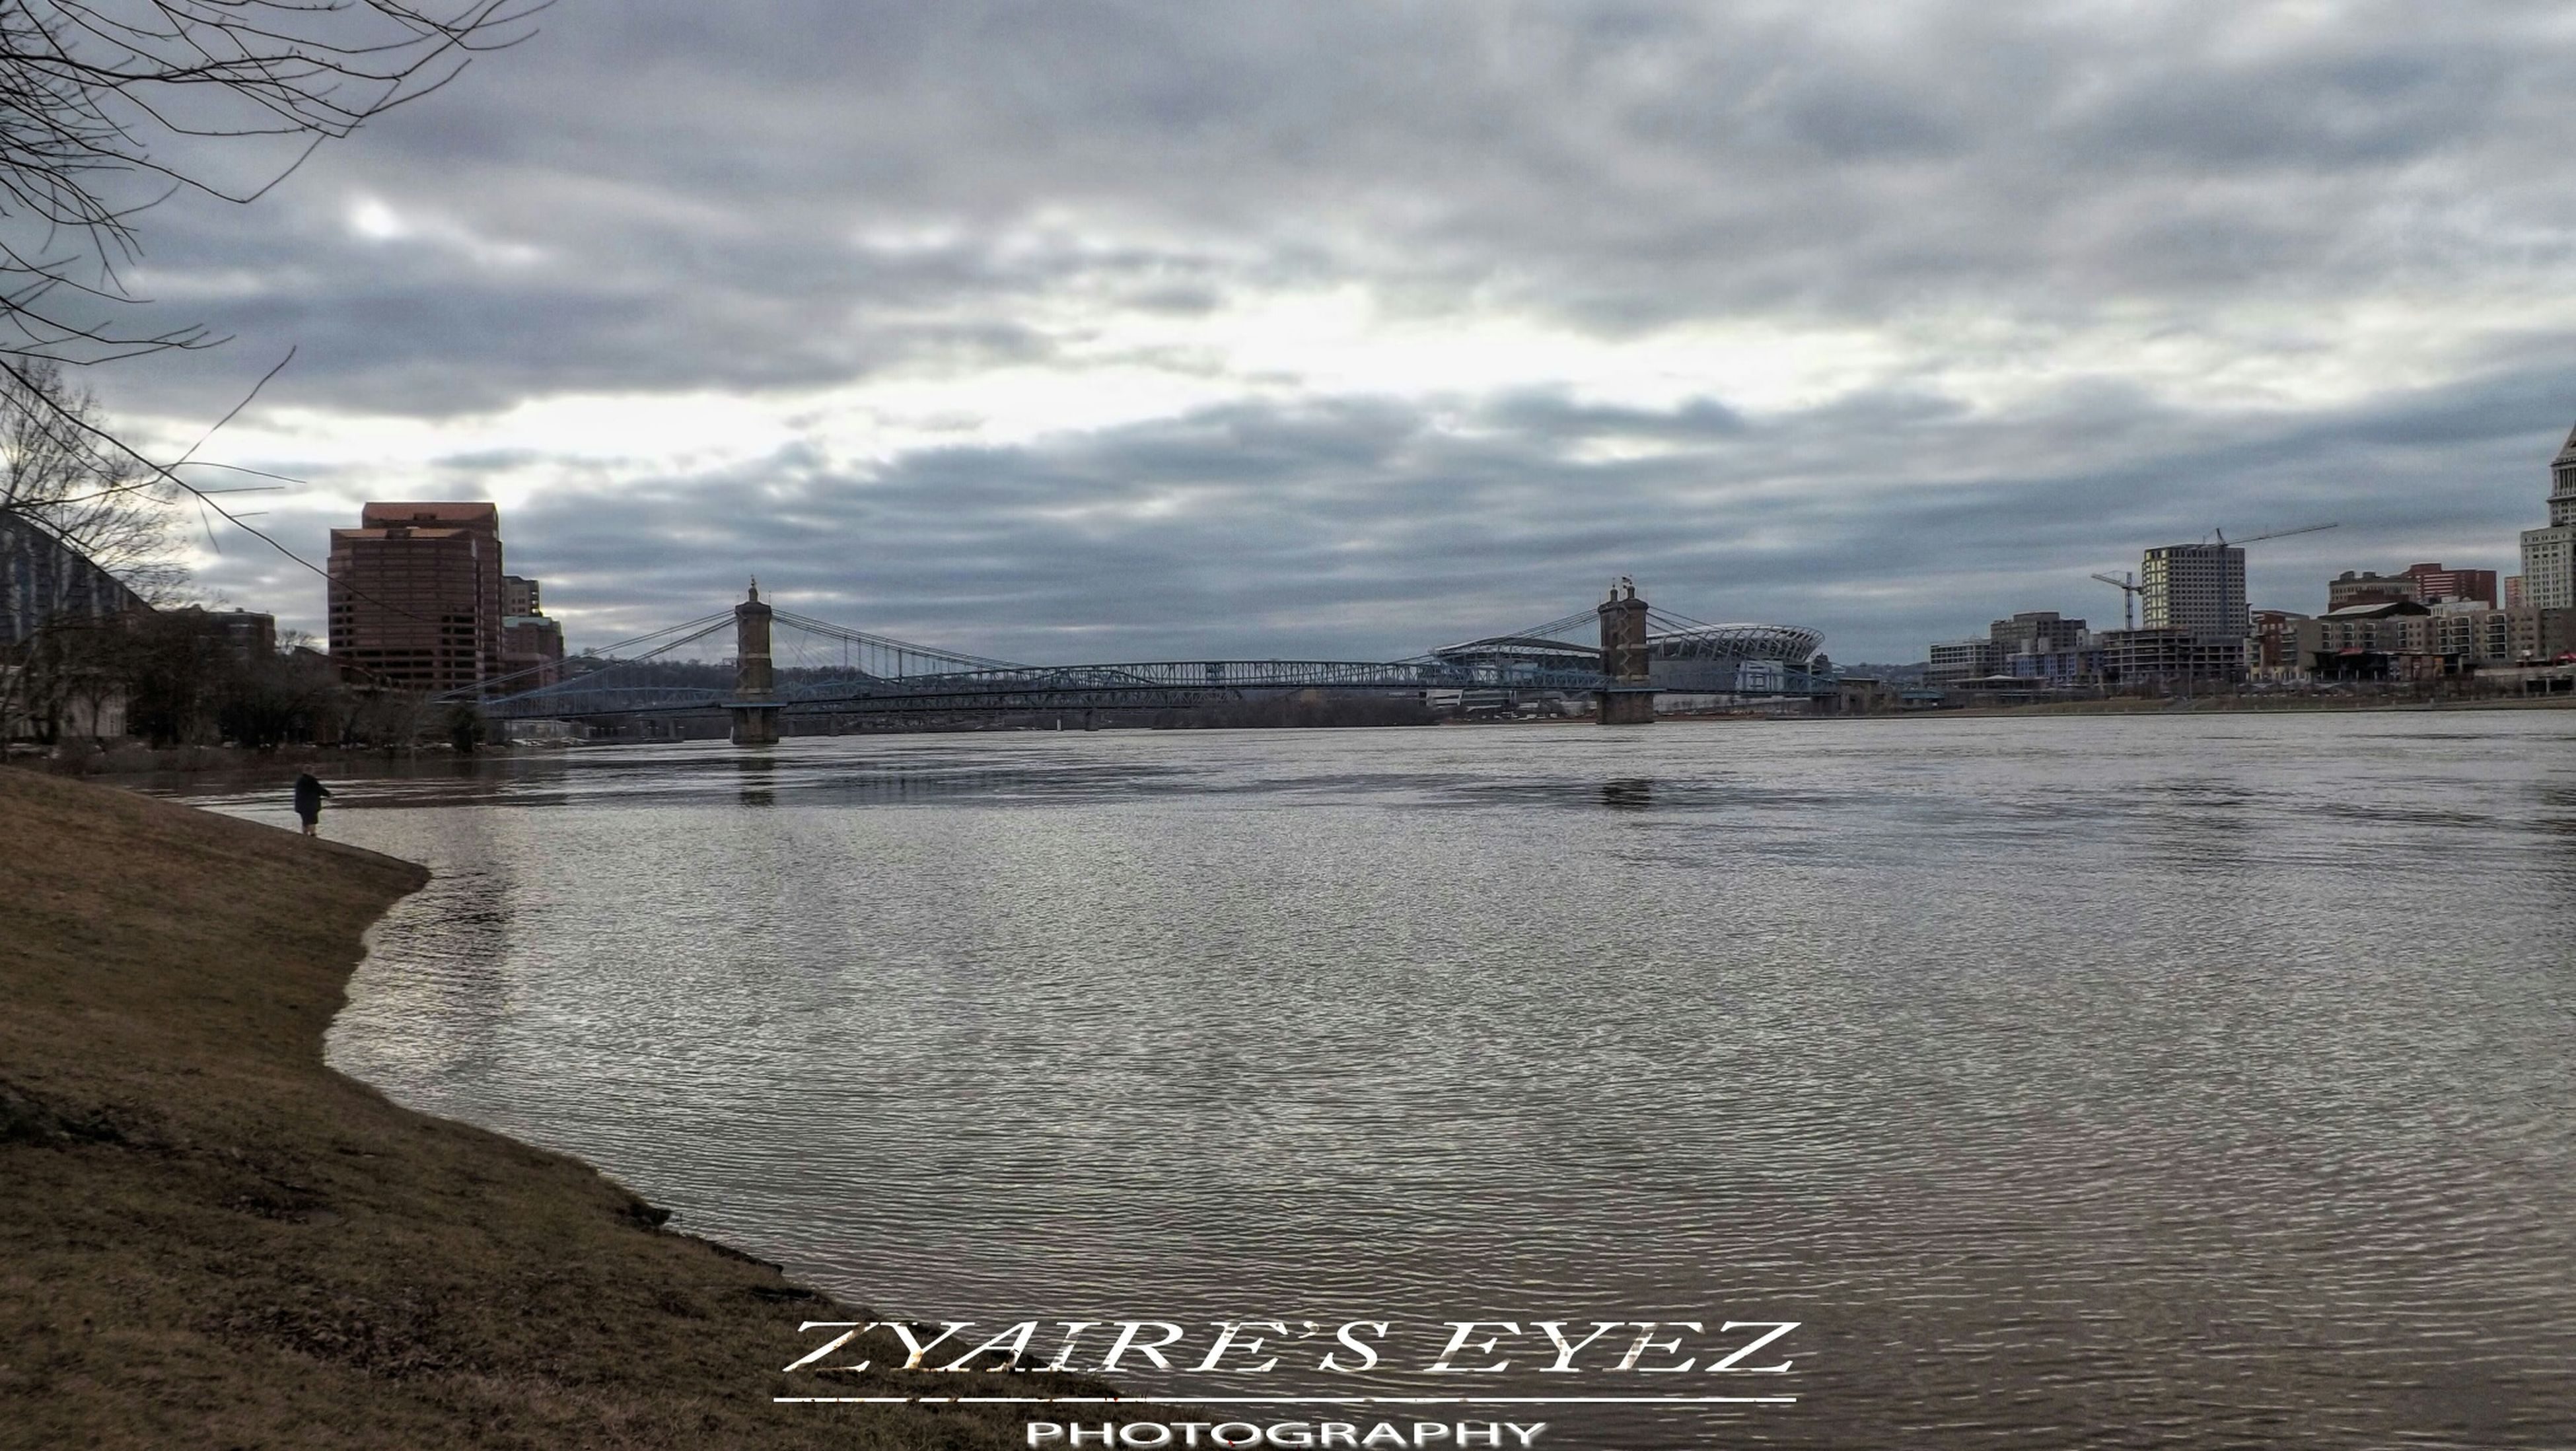 sky, water, building exterior, architecture, built structure, cloud - sky, cloudy, city, sea, river, cloud, waterfront, weather, cityscape, overcast, mid distance, nature, outdoors, day, transportation